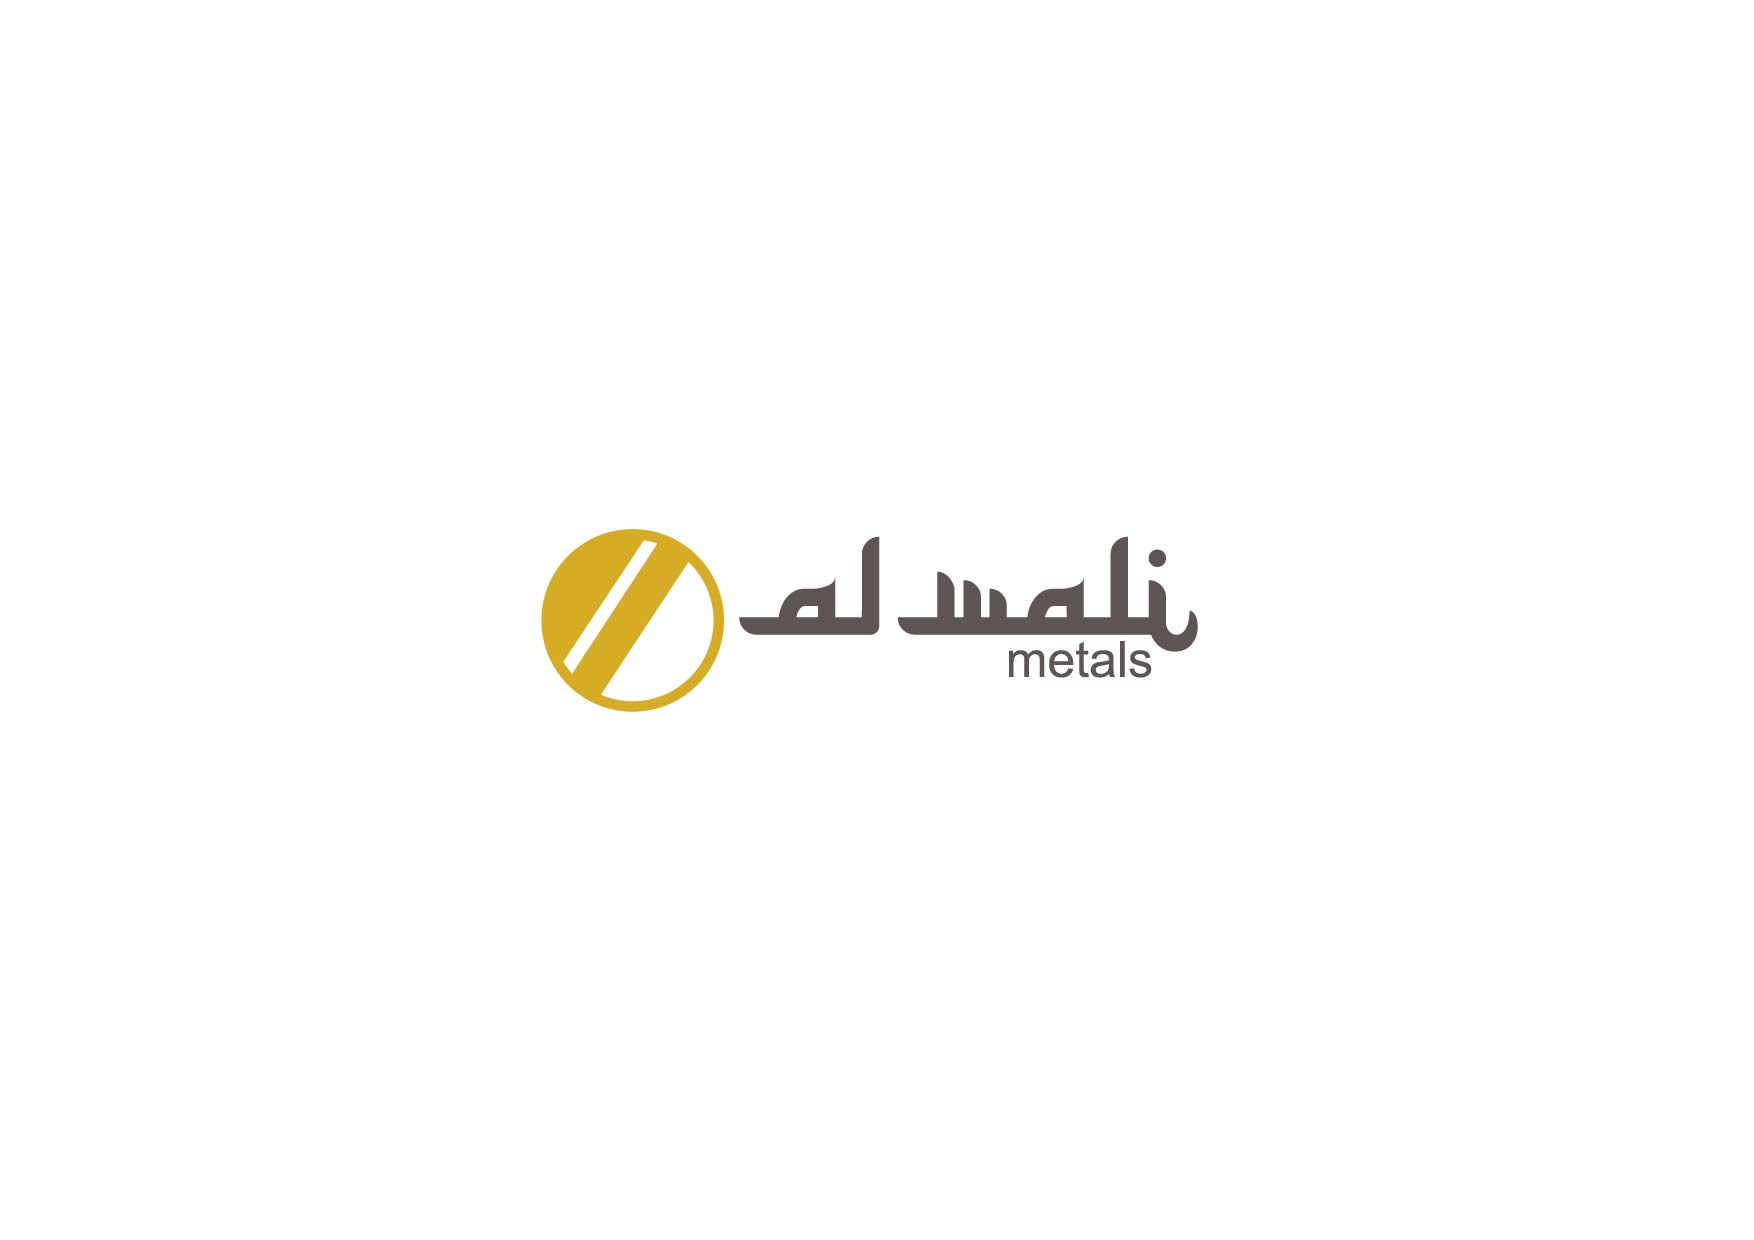 Logo Design by Osi Indra - Entry No. 9 in the Logo Design Contest Inspiring Logo Design for Al Wali Metals.